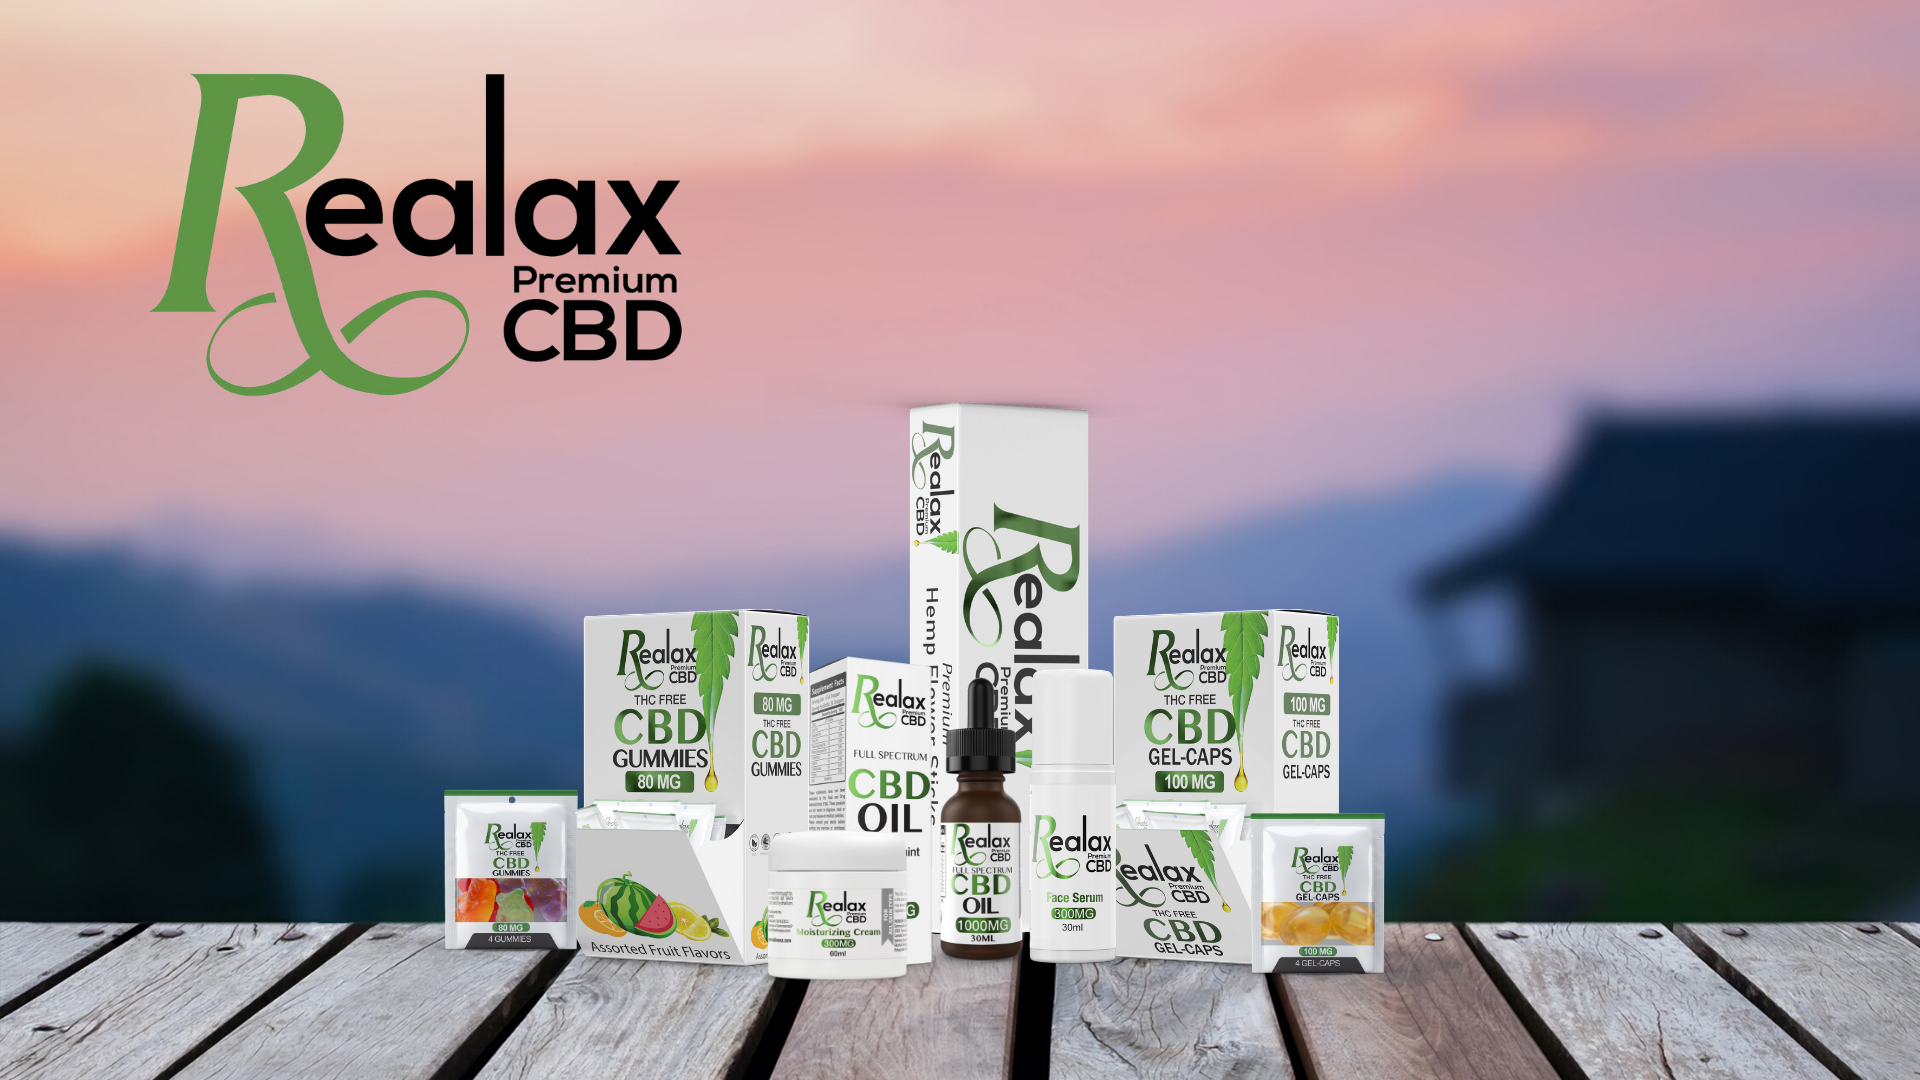 Realax CBD is now offered Nationwide Through Mr. Checkout's Direct Store Delivery Distributors